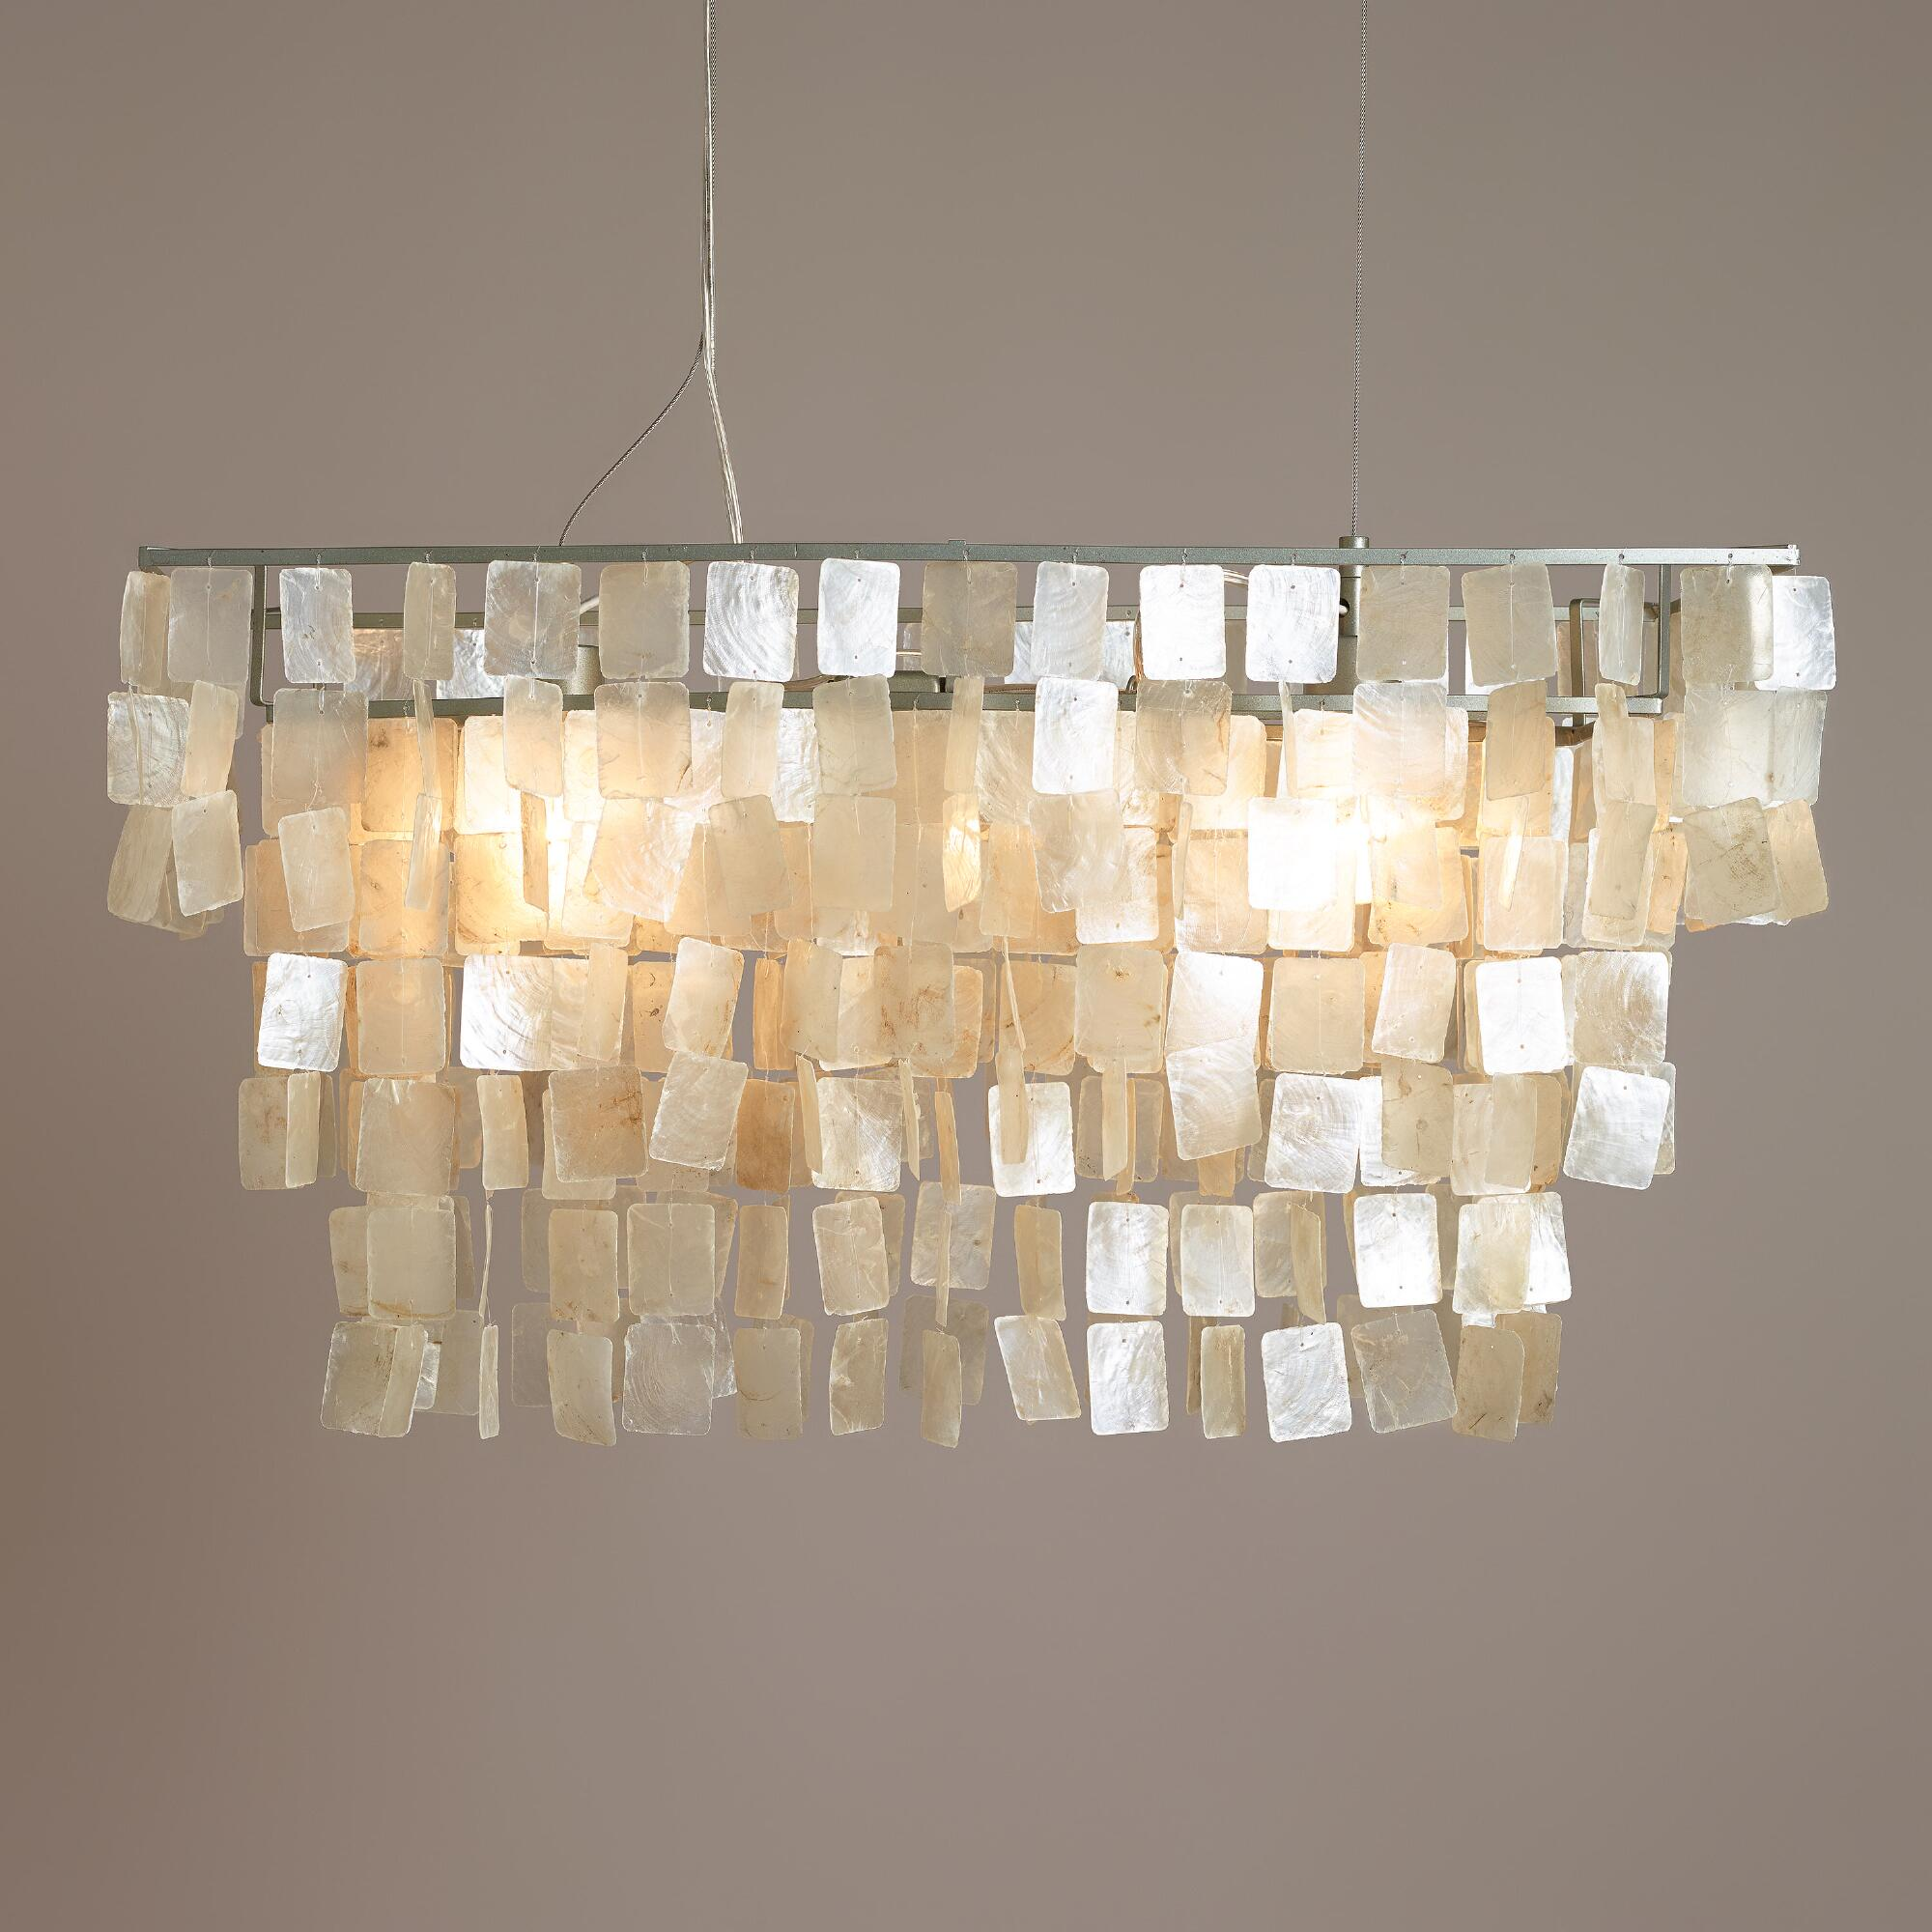 Awesome capiz chandelier for home lighting design with rectangular capiz chandelier